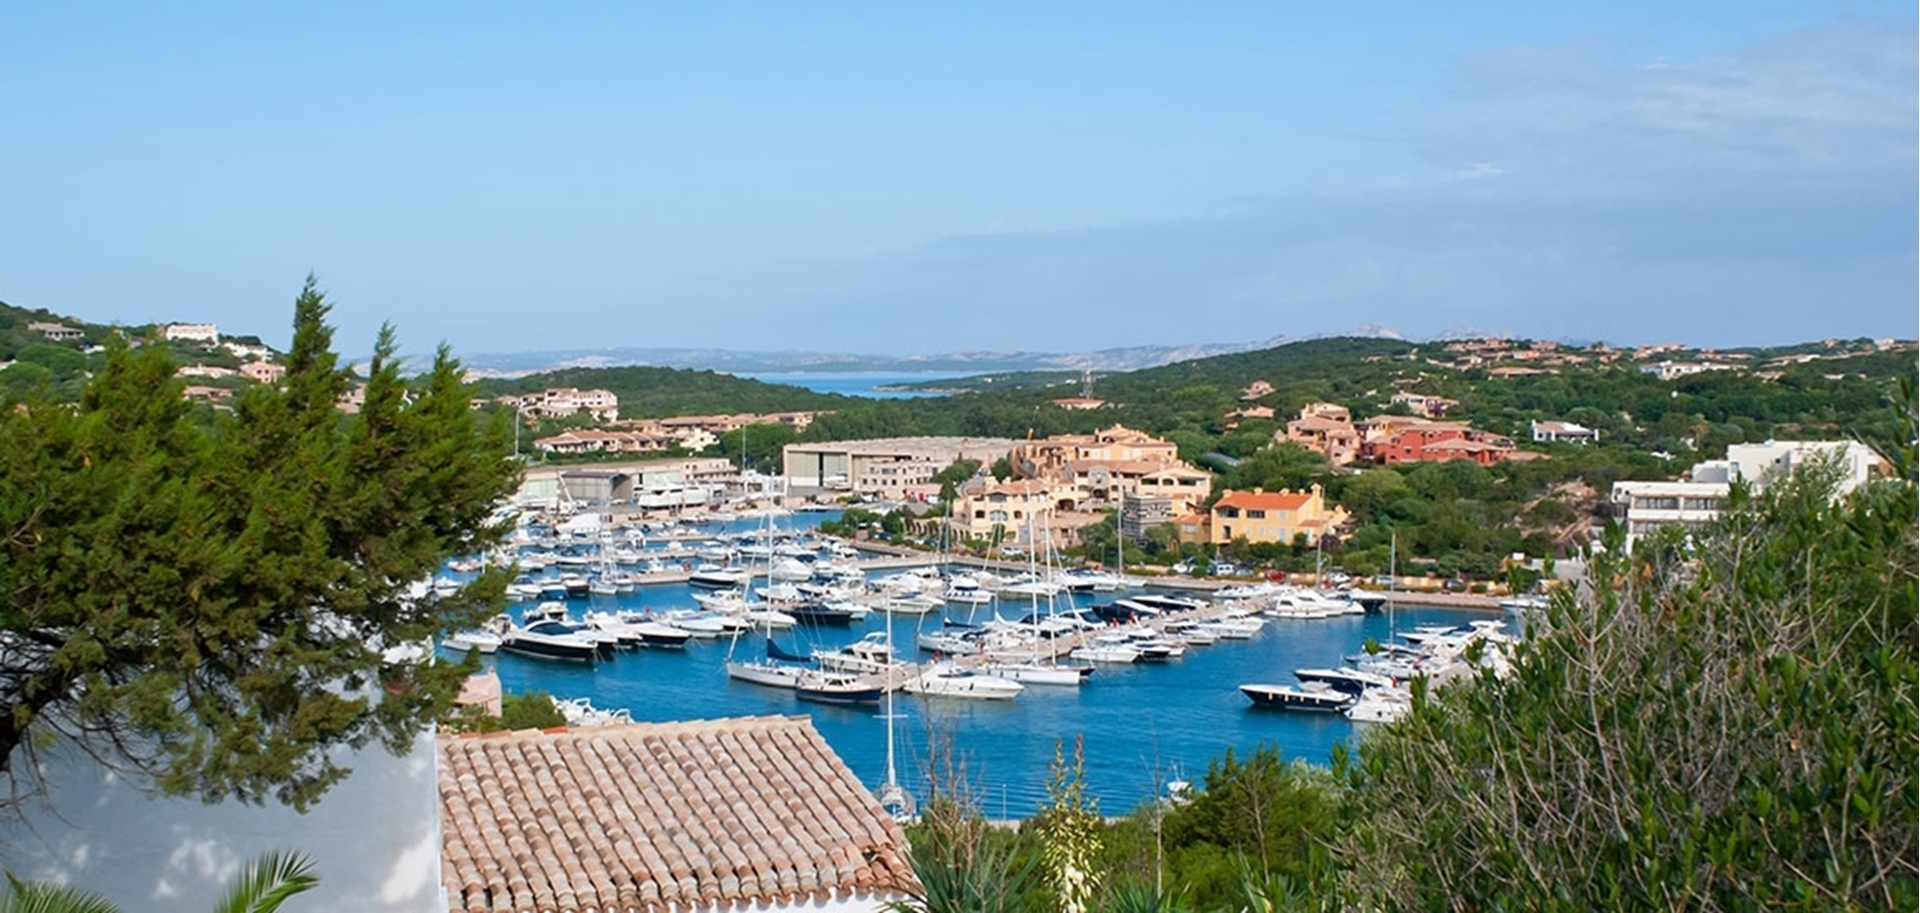 Picture of Porto Cervo